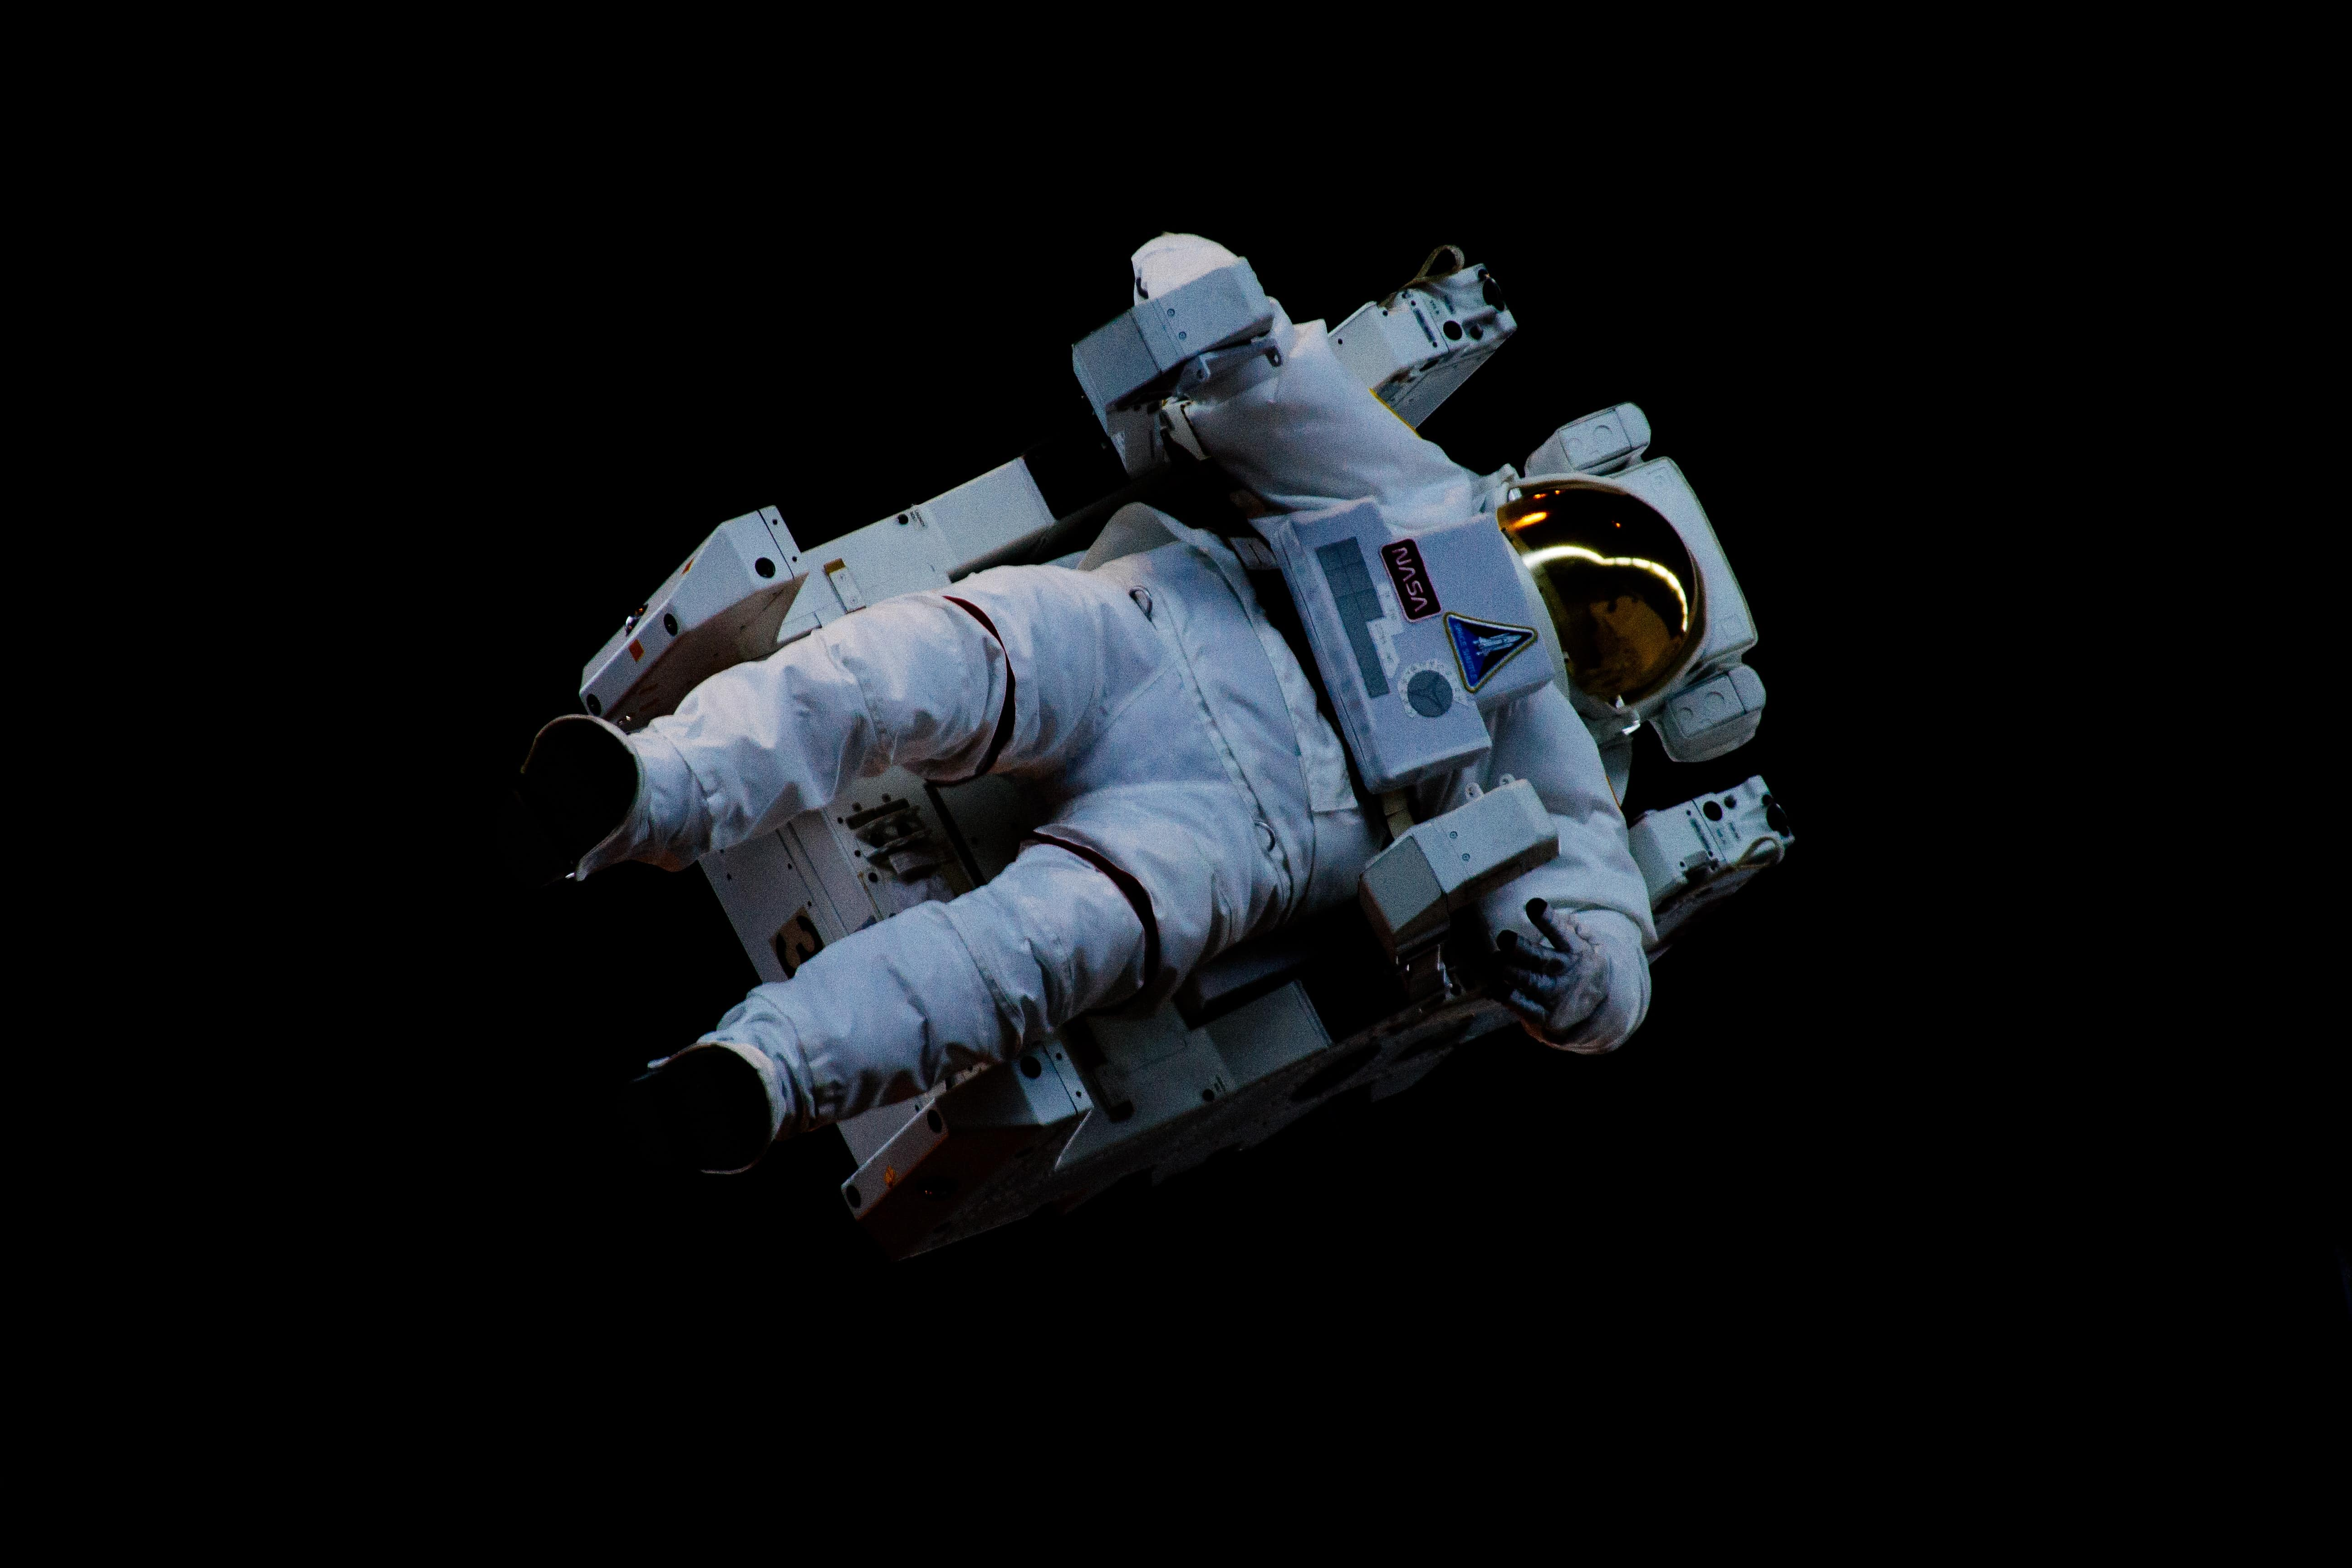 An Astronaut floating in the space